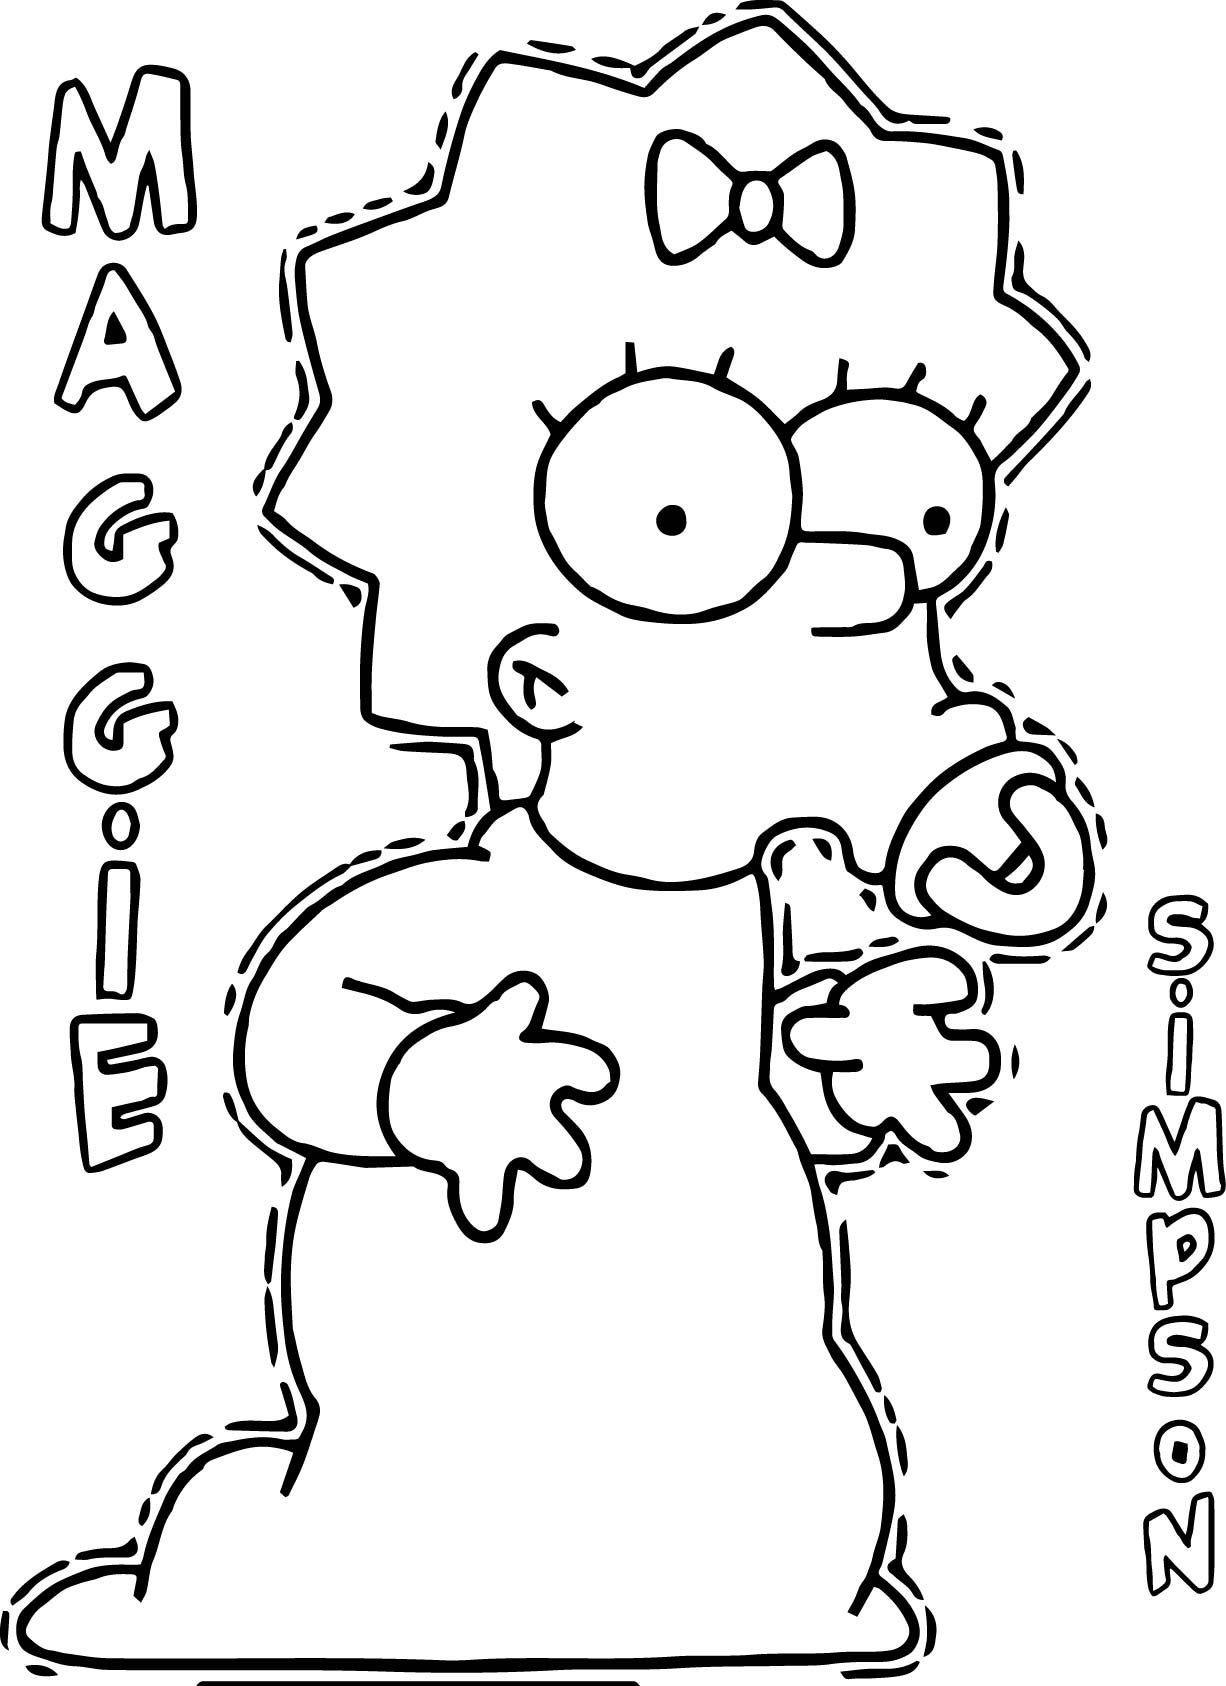 Cool Maggie The Simpsons Coloring Page Coloring Pages Coloring Sheets Mardi Gras Mask